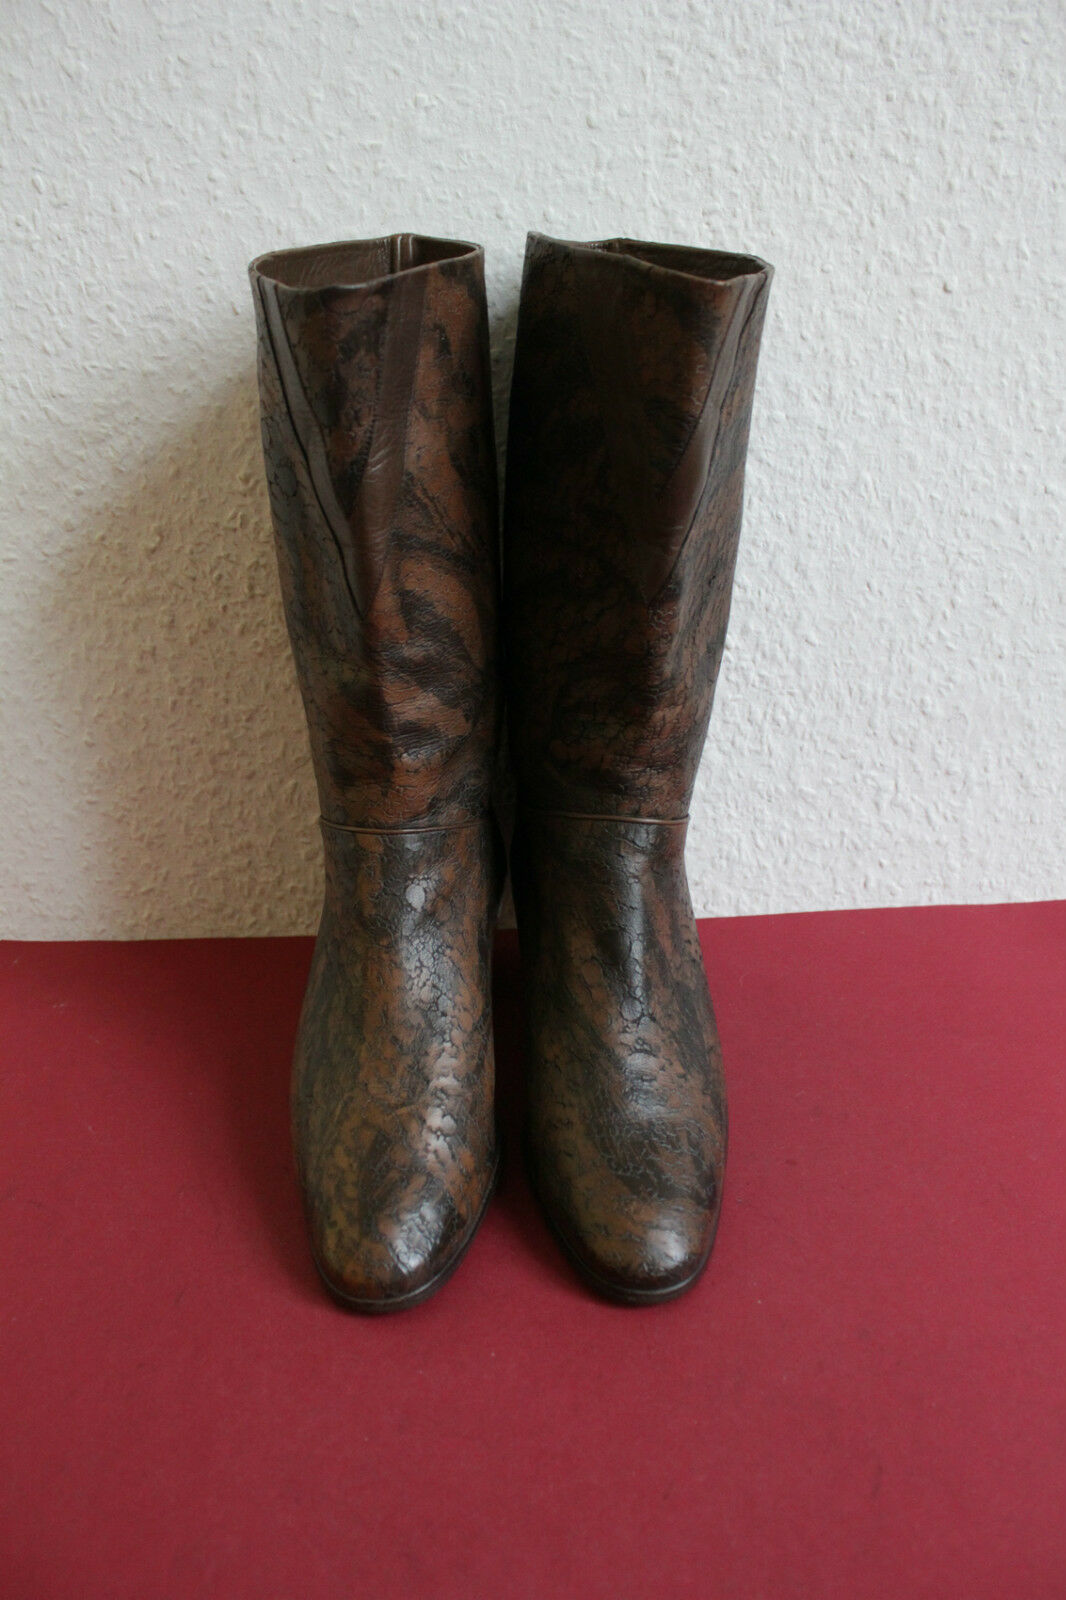 Vintage Shelby bota botas High made in italy cuero genuino tonos marrón 37,5 hasta 38